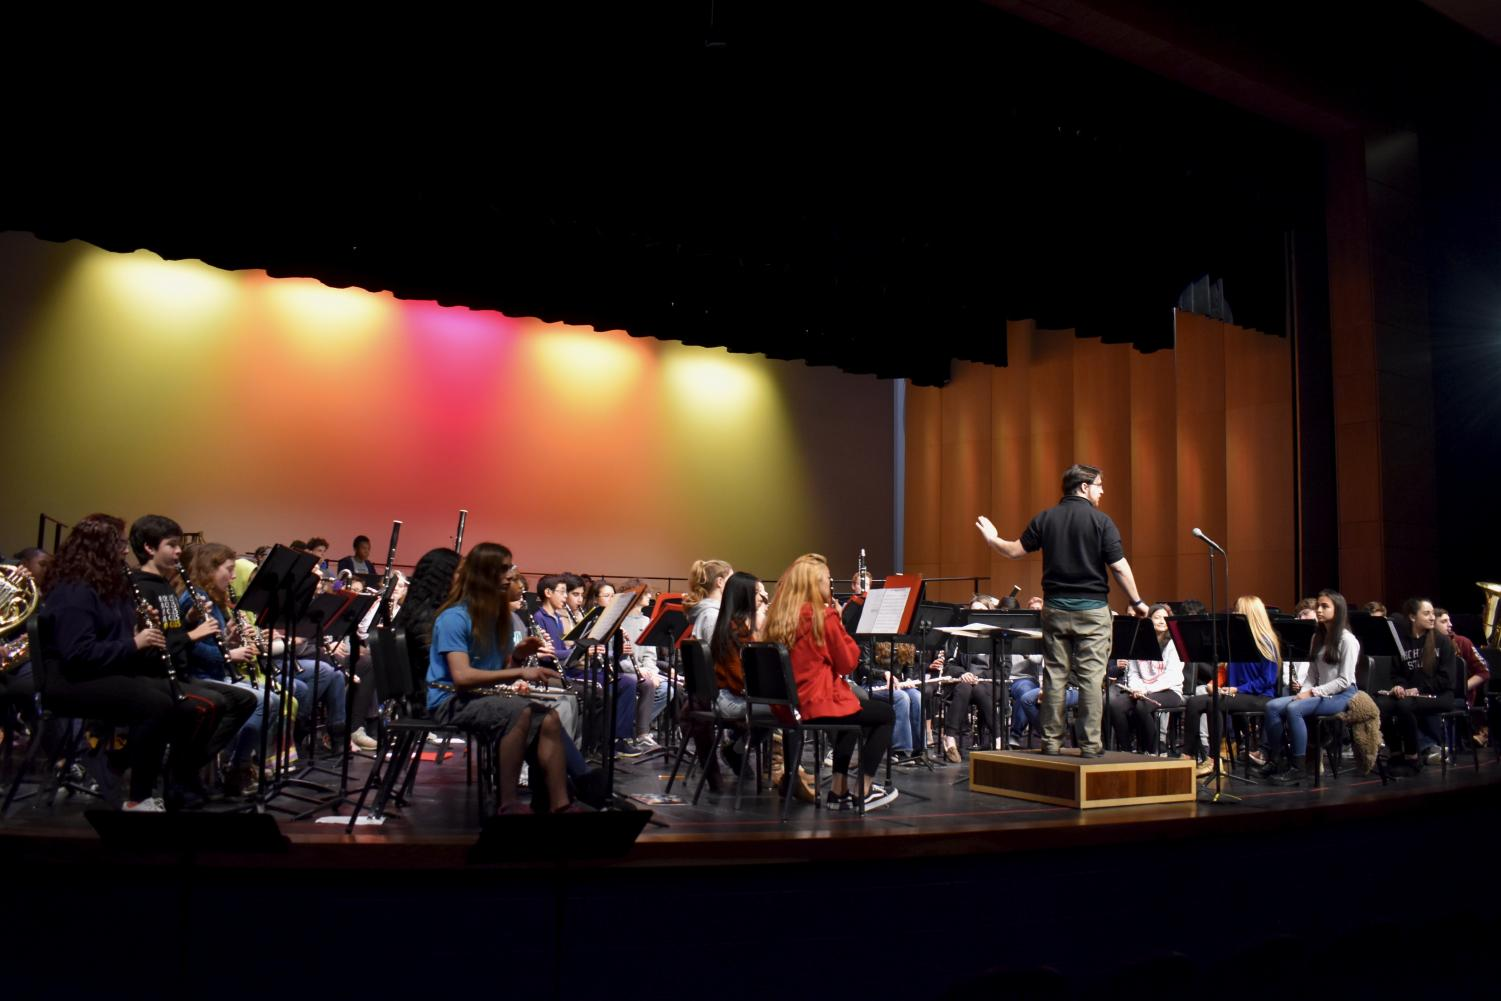 Teacher+Alan+Posner+conducts+the+band.%0A